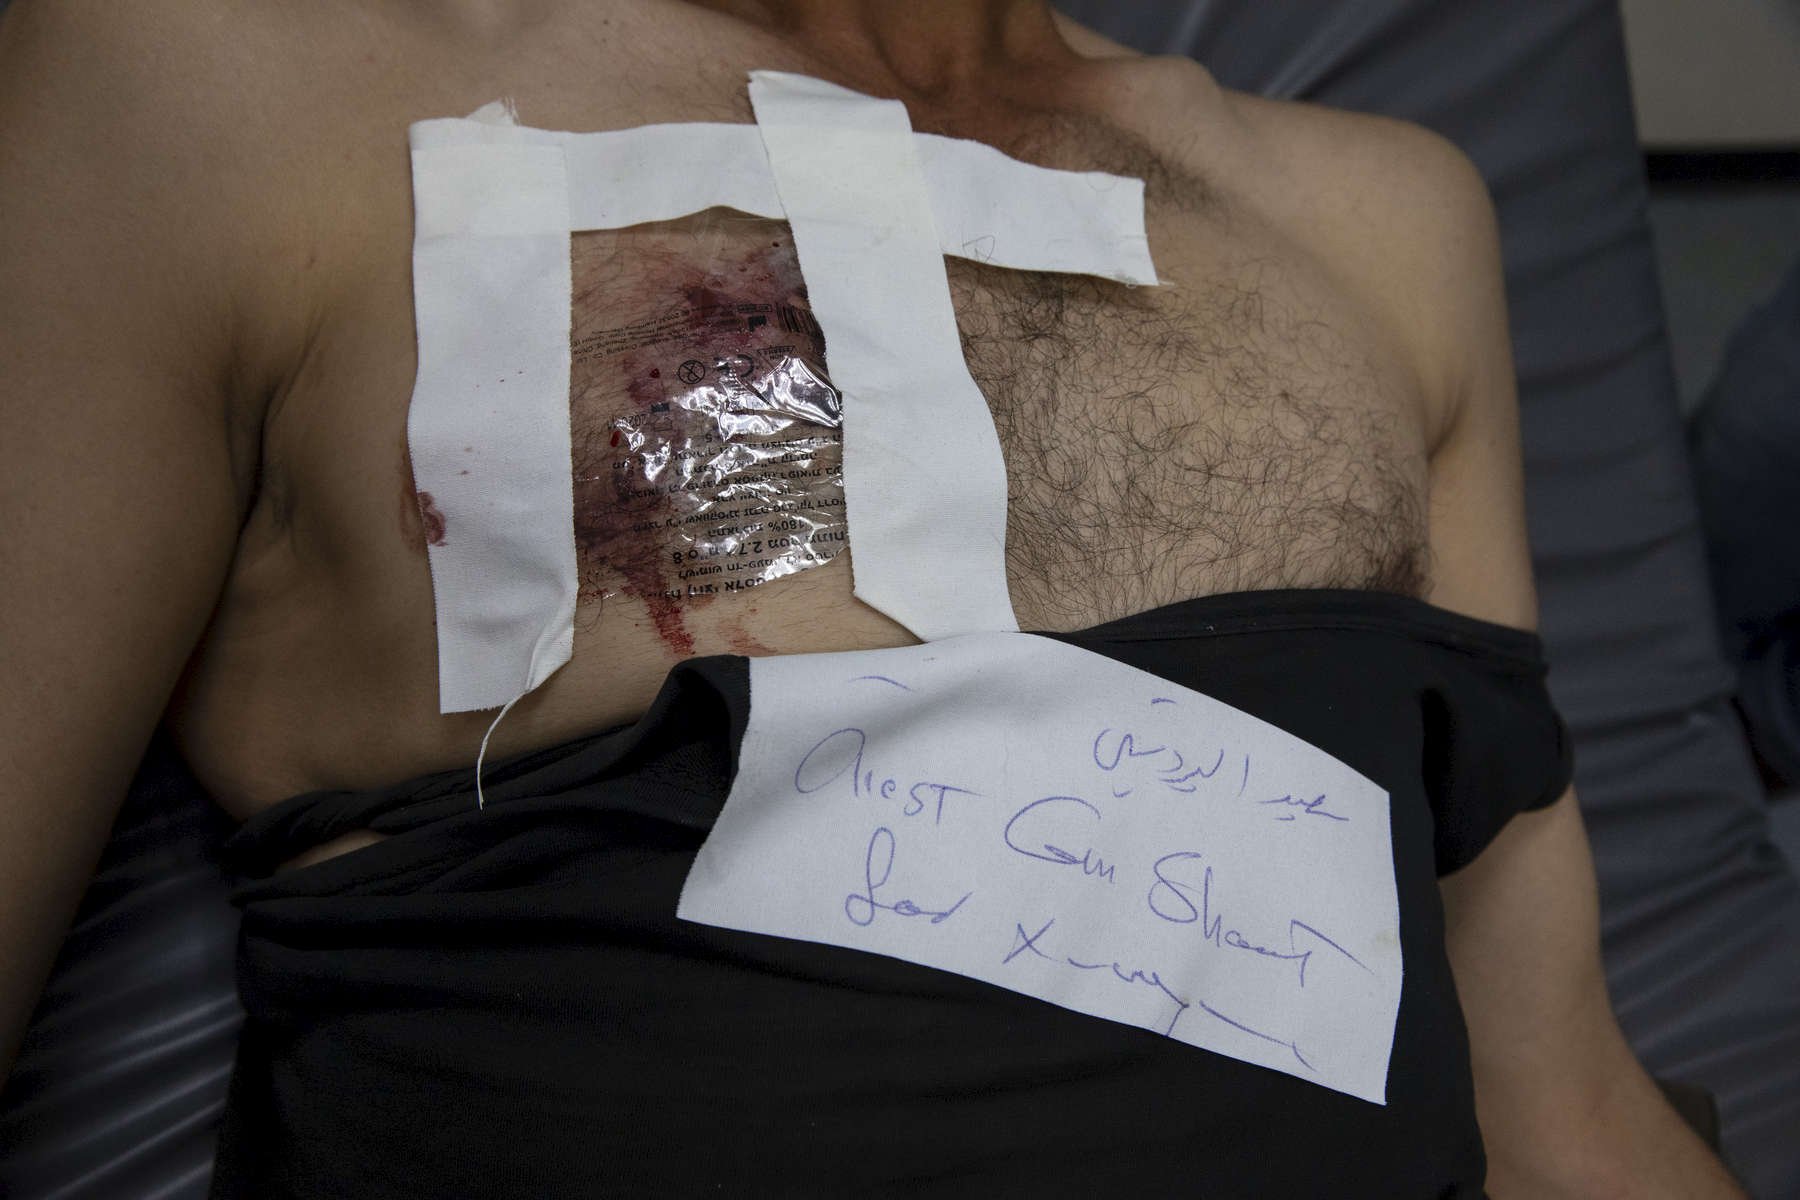 GAZA CITY, GAZA STRIP- MAY 26, 2018:  A man with a gunshot wound in his chest is seen in                                                                                                                                                                                    the emergency room at the Al Shifa hospital on May 26 ,2018 in Gaza city, Gaza strip. According to the International Committee of the Red Cross (ICRC), 13,000 Palestinians were wounded (as of June 19, 2018), the majority severely, with some 1,400 struck by three to five bullets. No Israelis were physically harmed during this time period, Israel's use of deadly force was condemned during the UN general assembly on June 13 th along with other human rights organizations. The Israeli military (IDF) started using new weaponry, explosive bullets that shatter bones, tissue, destroying veins and arteries, the aim is to create a handicapped community, especially amongst the young male population. Many of the wounded protesters have to undergo multiple surgeries to try to save their limbs, and in some cases amputation is the only solution. With limited healthcare available in Gaza many were sent to Jordan and Turkey for further treatment. More issues that plague Gaza include a water supply that is 95 percent contaminated and a population forced to live without electricity for 21 hours a day. Gaza is compared to Venezuela with almost half of it's labor force unemployed. Everyone is well aware that Gaza's two million inhabitants are trapped in a cycle of violence and poverty, living in an open air prison. The problems and complications affecting Gaza today are overwhelming. The world, seemingly accustomed to the suffering of the Gazan people turns a blind eye. (Photo by Paula Bronstein )